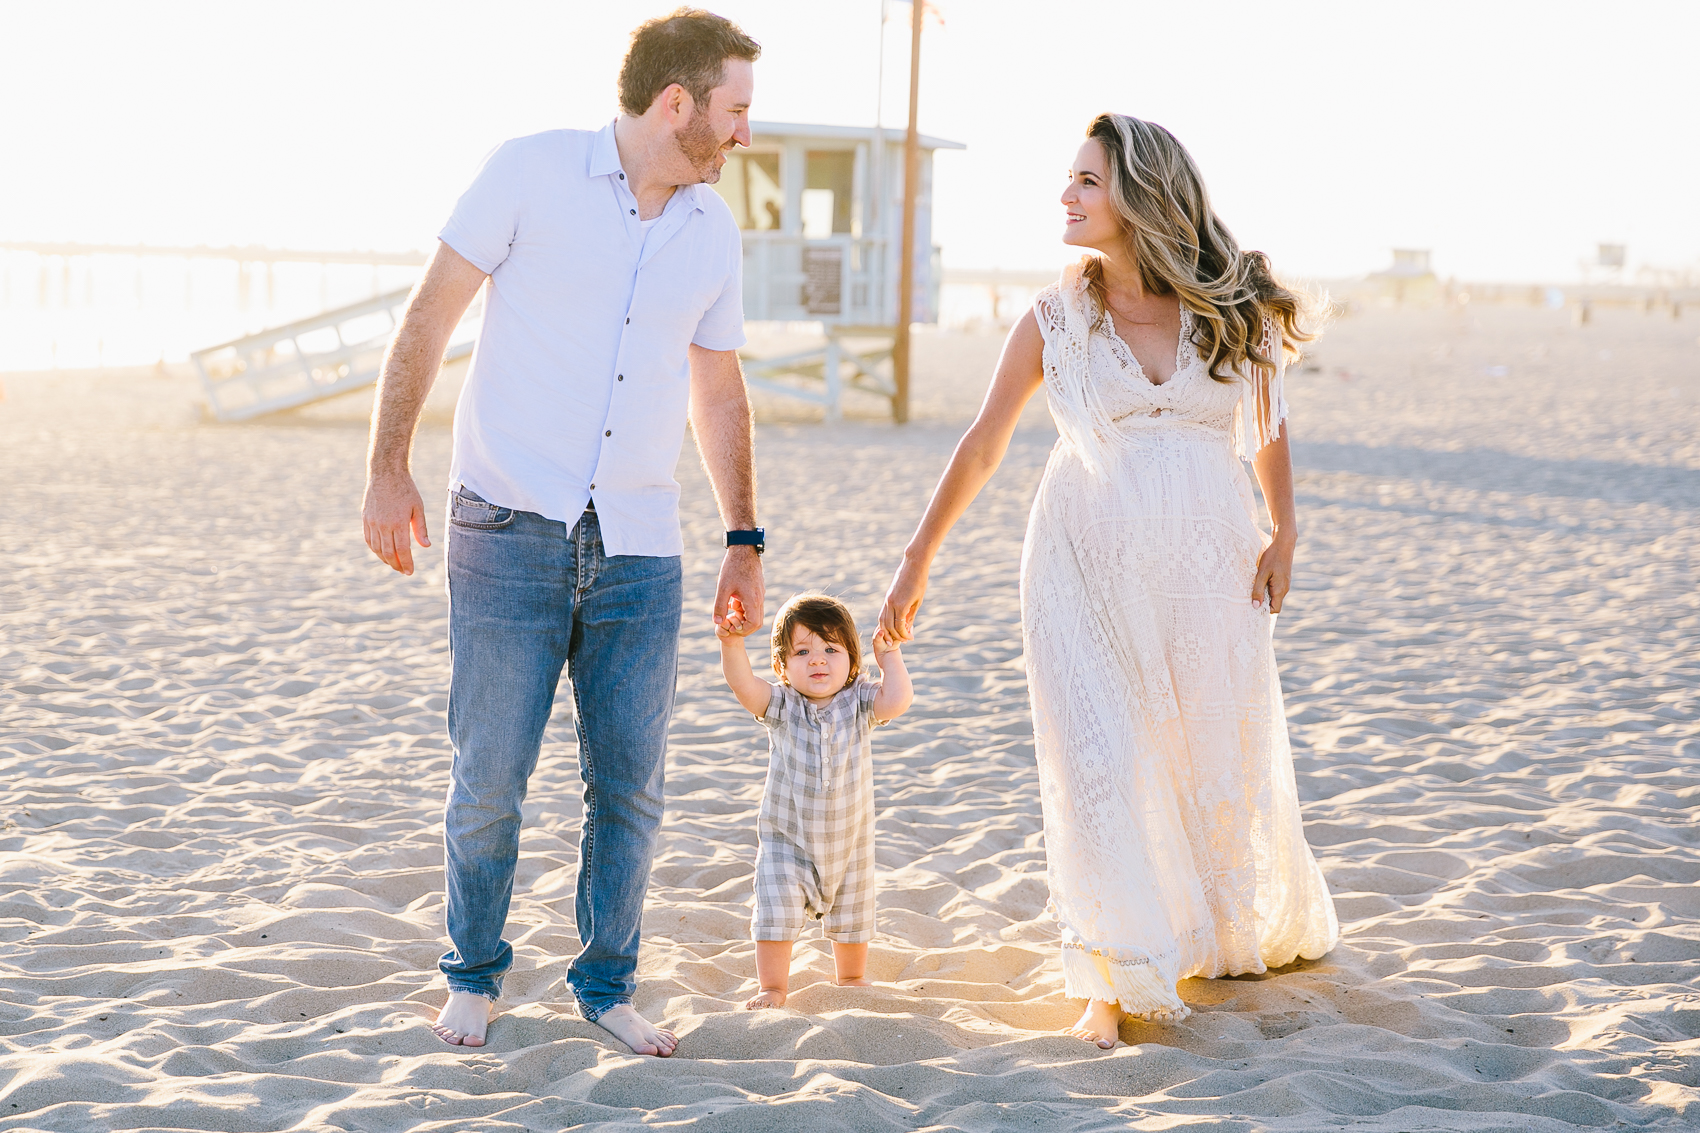 Los_Angeles_Family_Photographer_Maternity_Photos_Baby_Pregnancy_Venice_Beach_Golden_Hour-0498.jpg